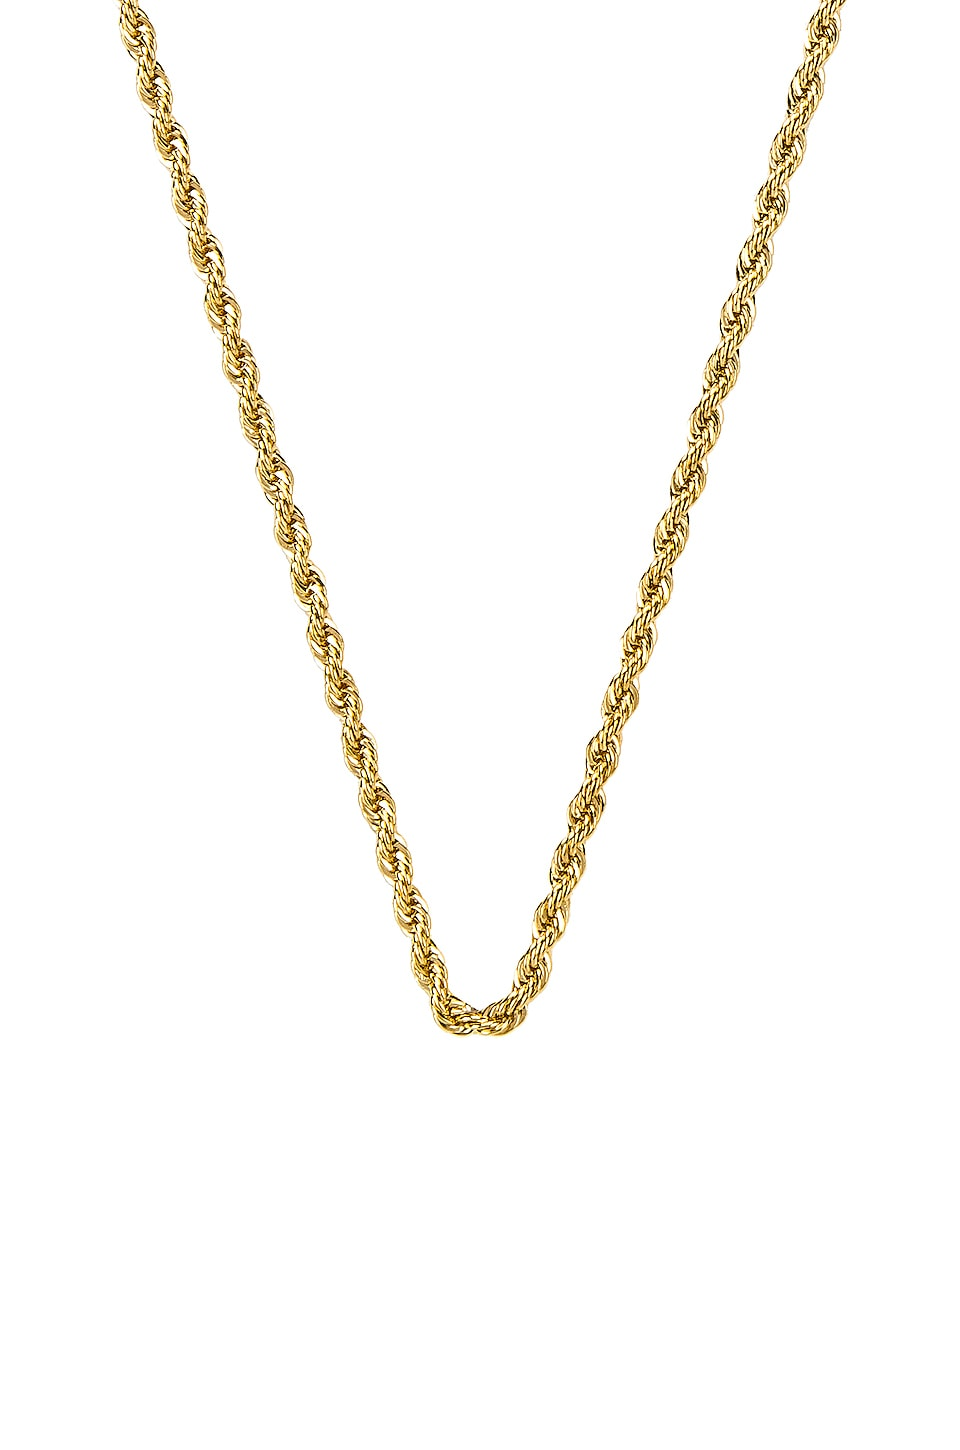 EIGHT by GJENMI JEWELRY Rope Layering Chain Necklace in Gold